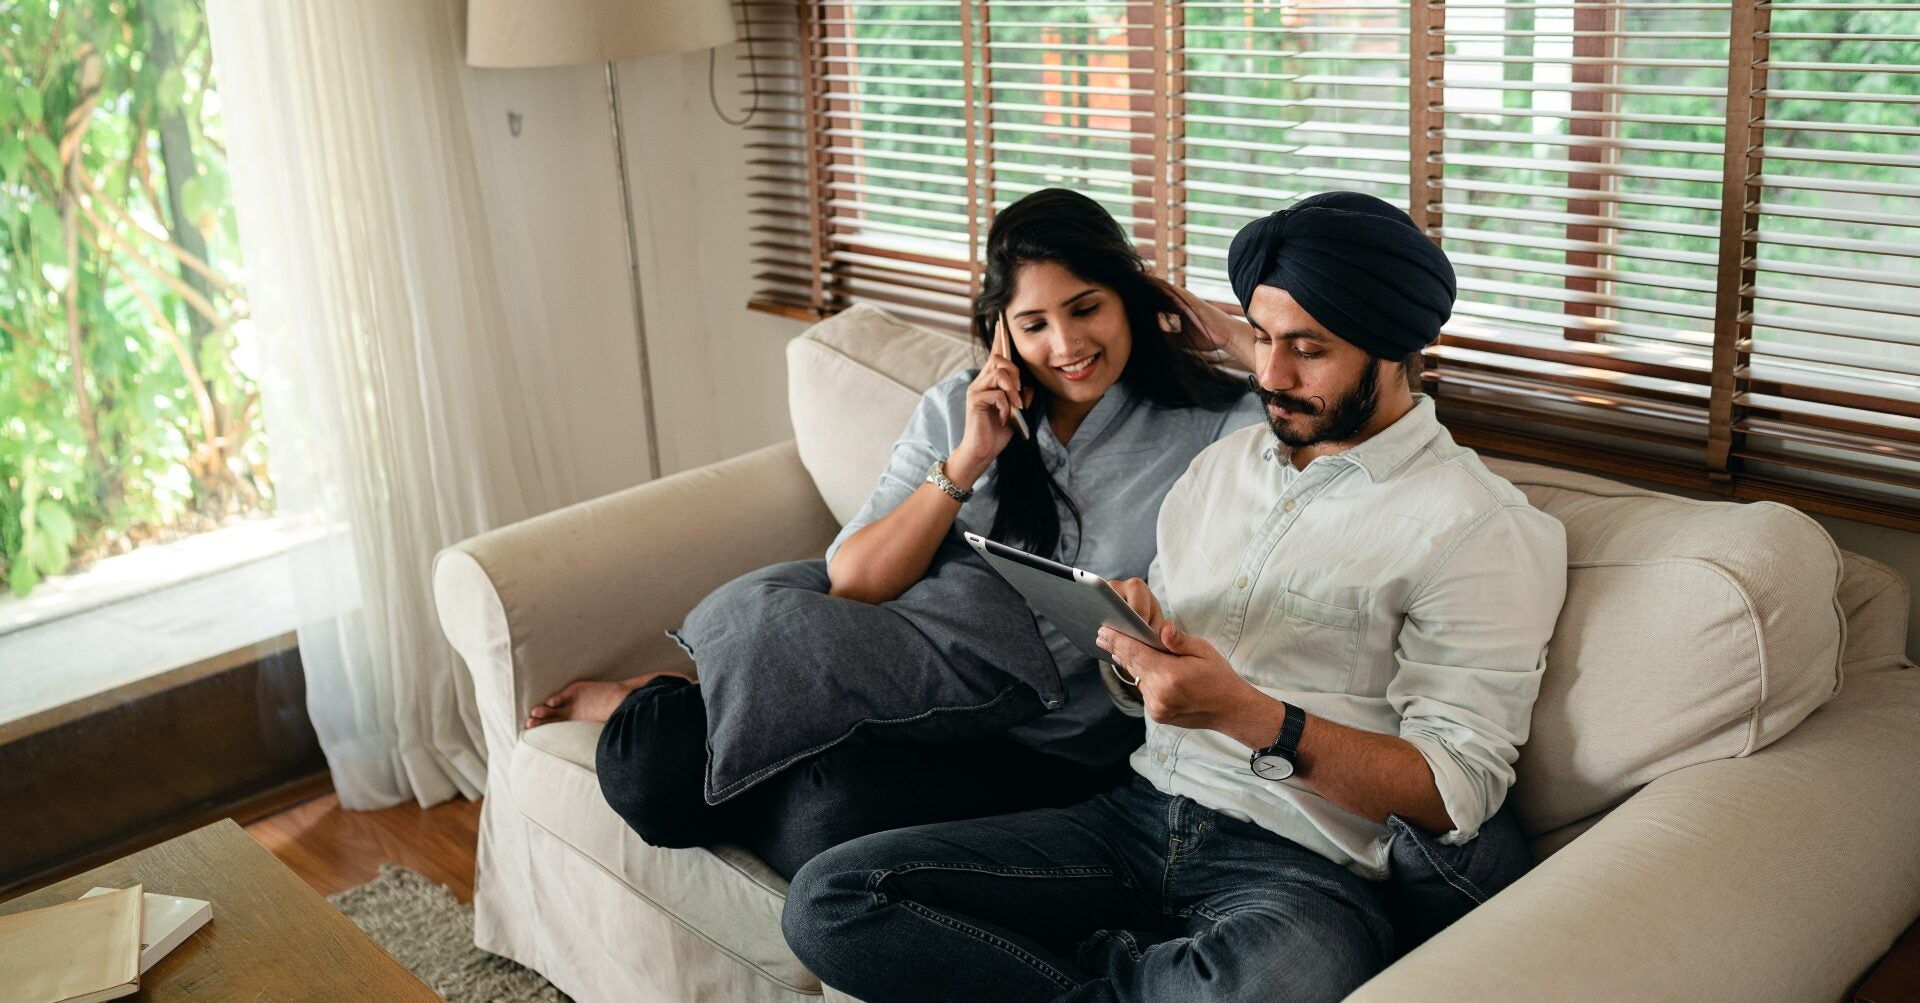 A couple sits on a loveseat smiling and looking at a tablet together